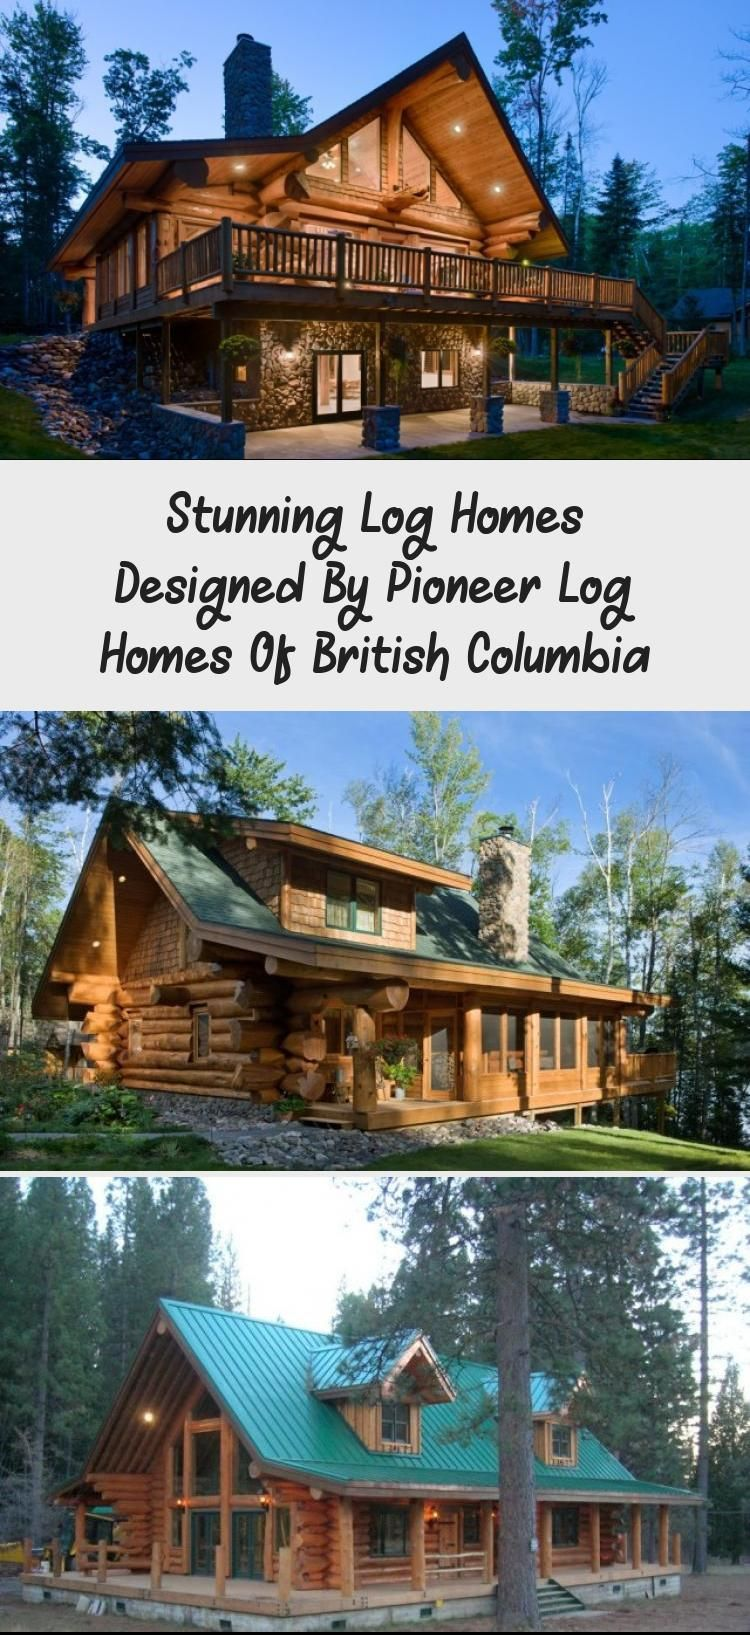 Stunning Log Homes Designed By Pioneer Log Homes Of British Columbia Woodencabindesign Woodencabinsnow Cozywoodencab Log Home Designs Log Homes House Design